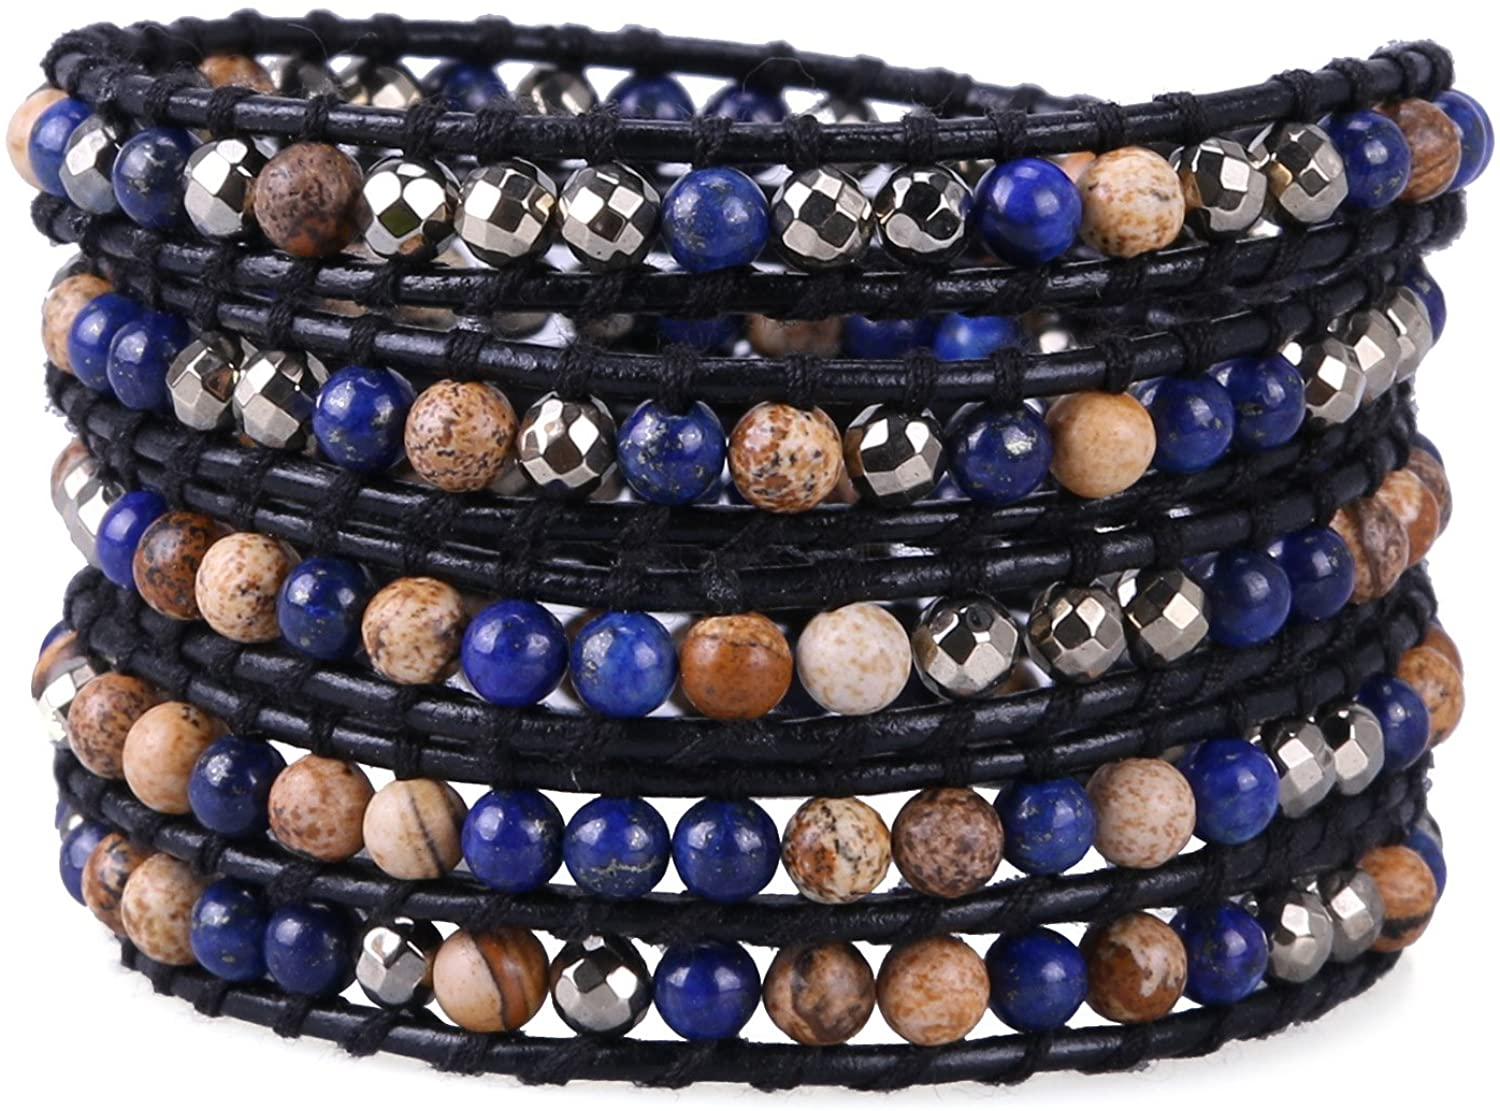 KELITCH Created Lapis Lazuli Beads Bracelet Multi Strands Handmade Woven Bangle (Lapis)